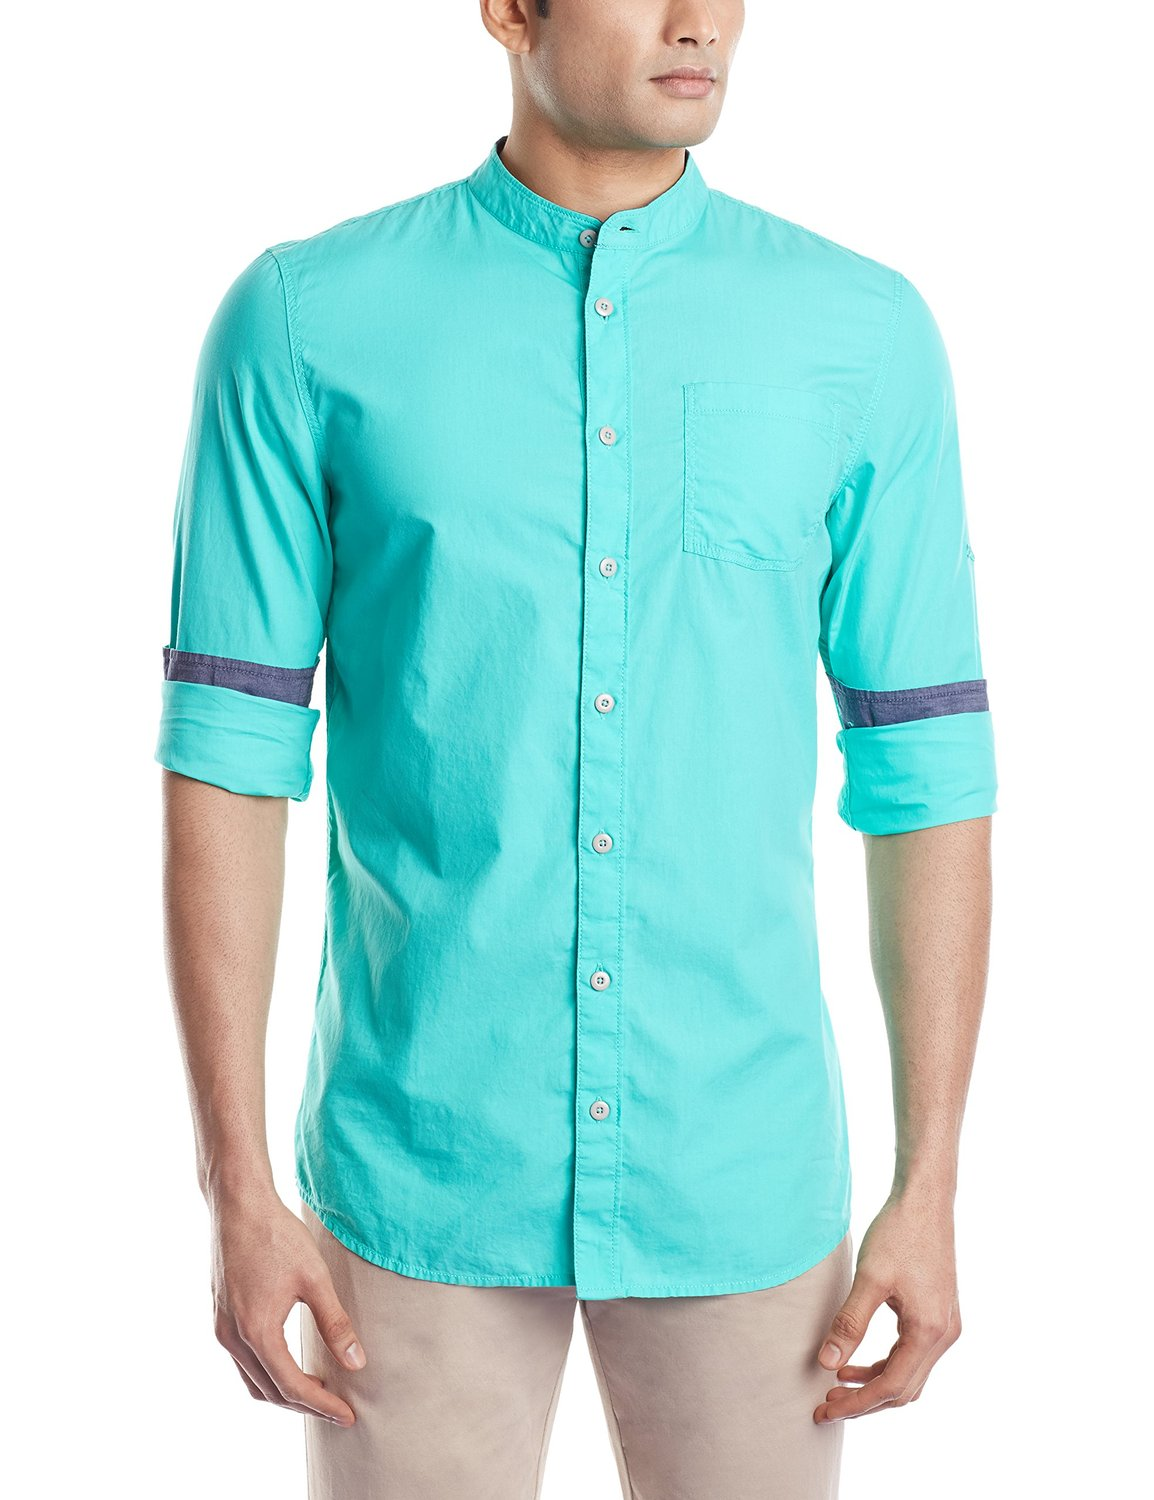 Puma-Men-Casual-Shirt